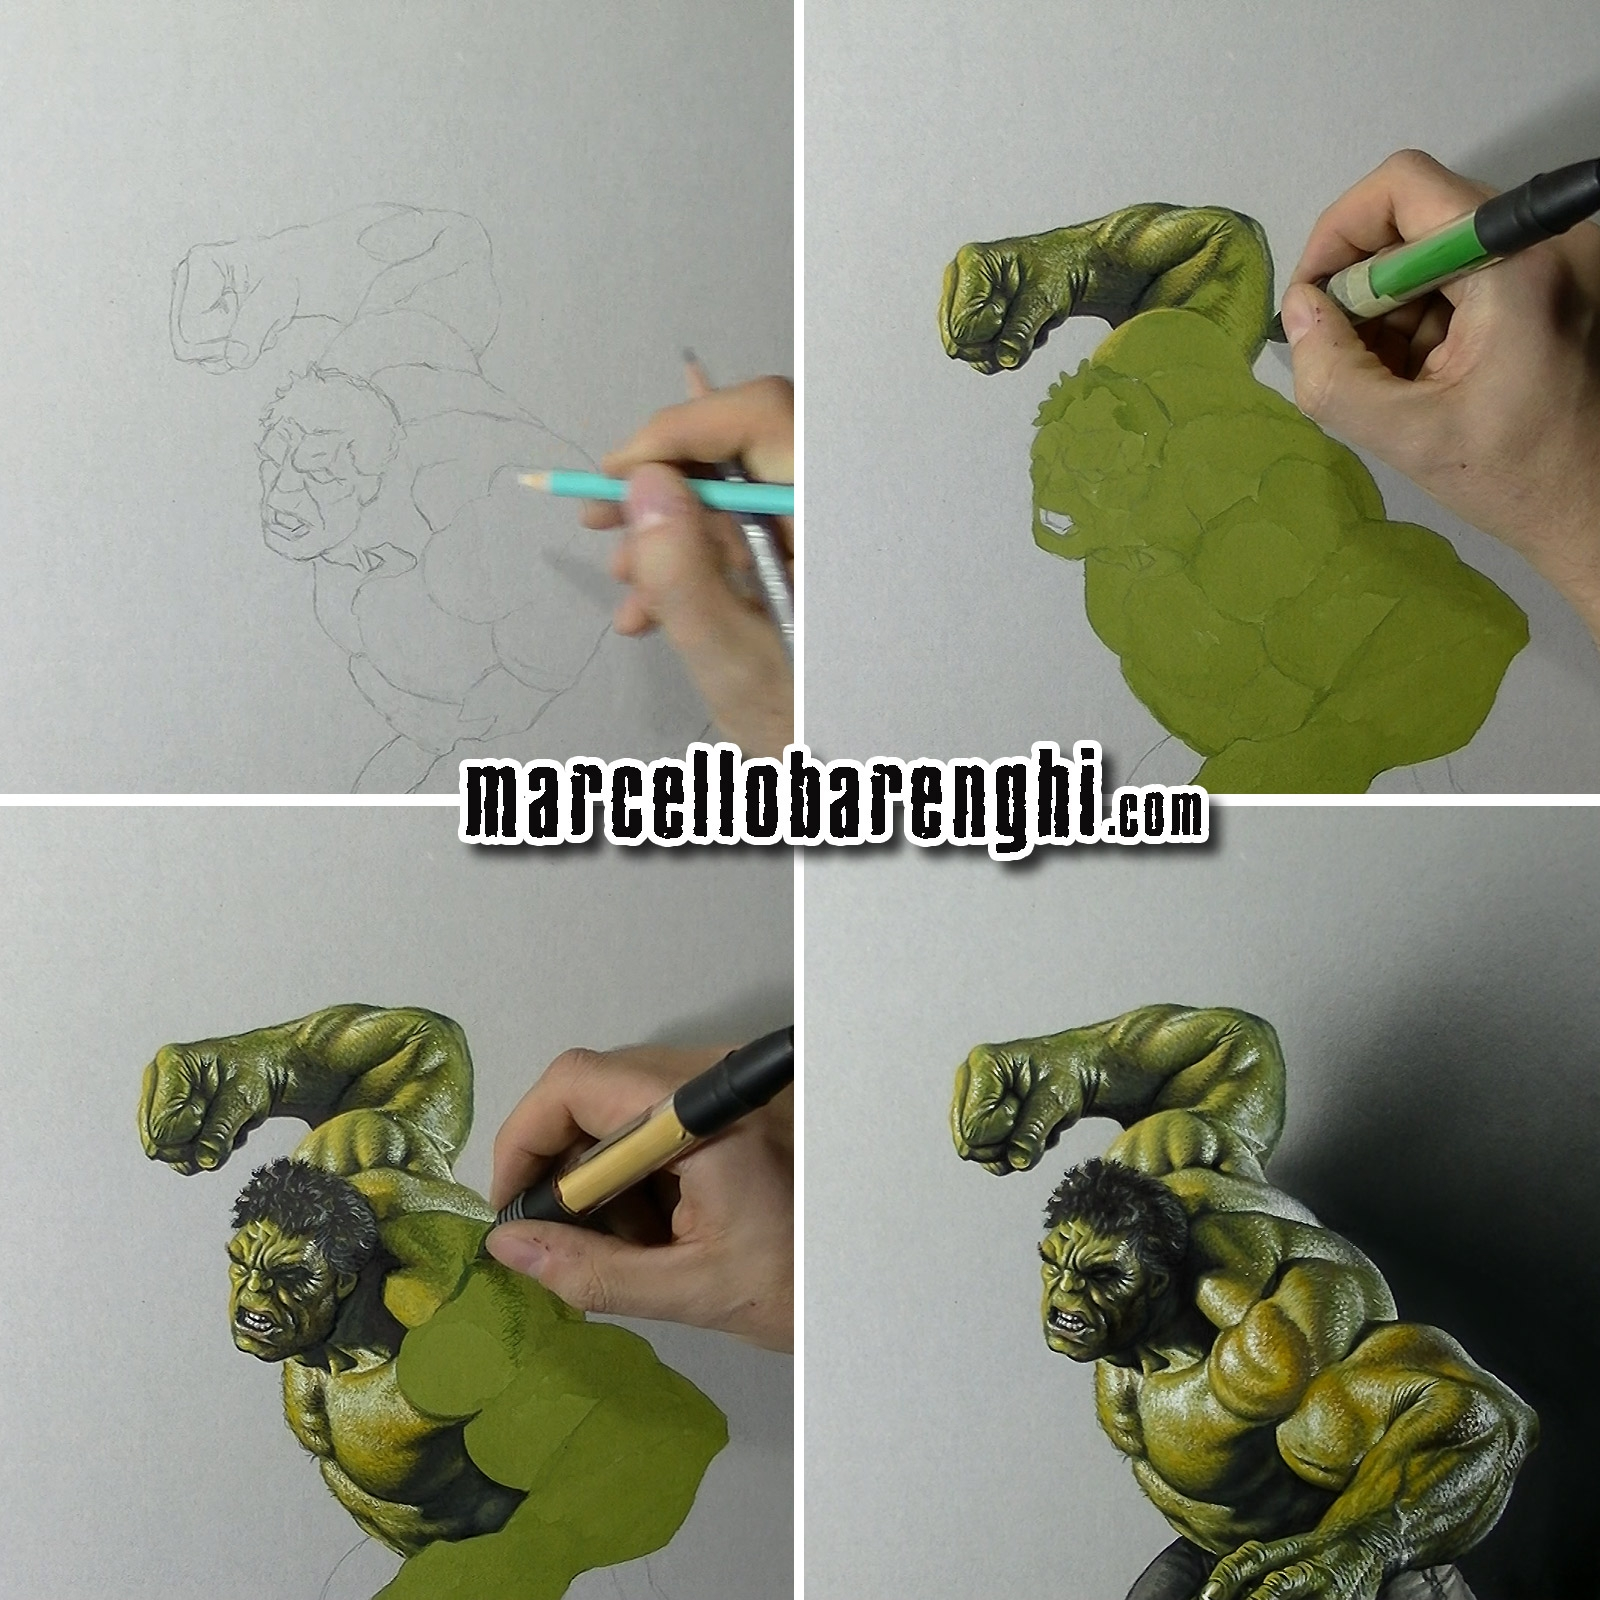 12-The-Hulk-Marcello-Barenghi-Realistic-Movie-Character-Drawings-www-designstack-co